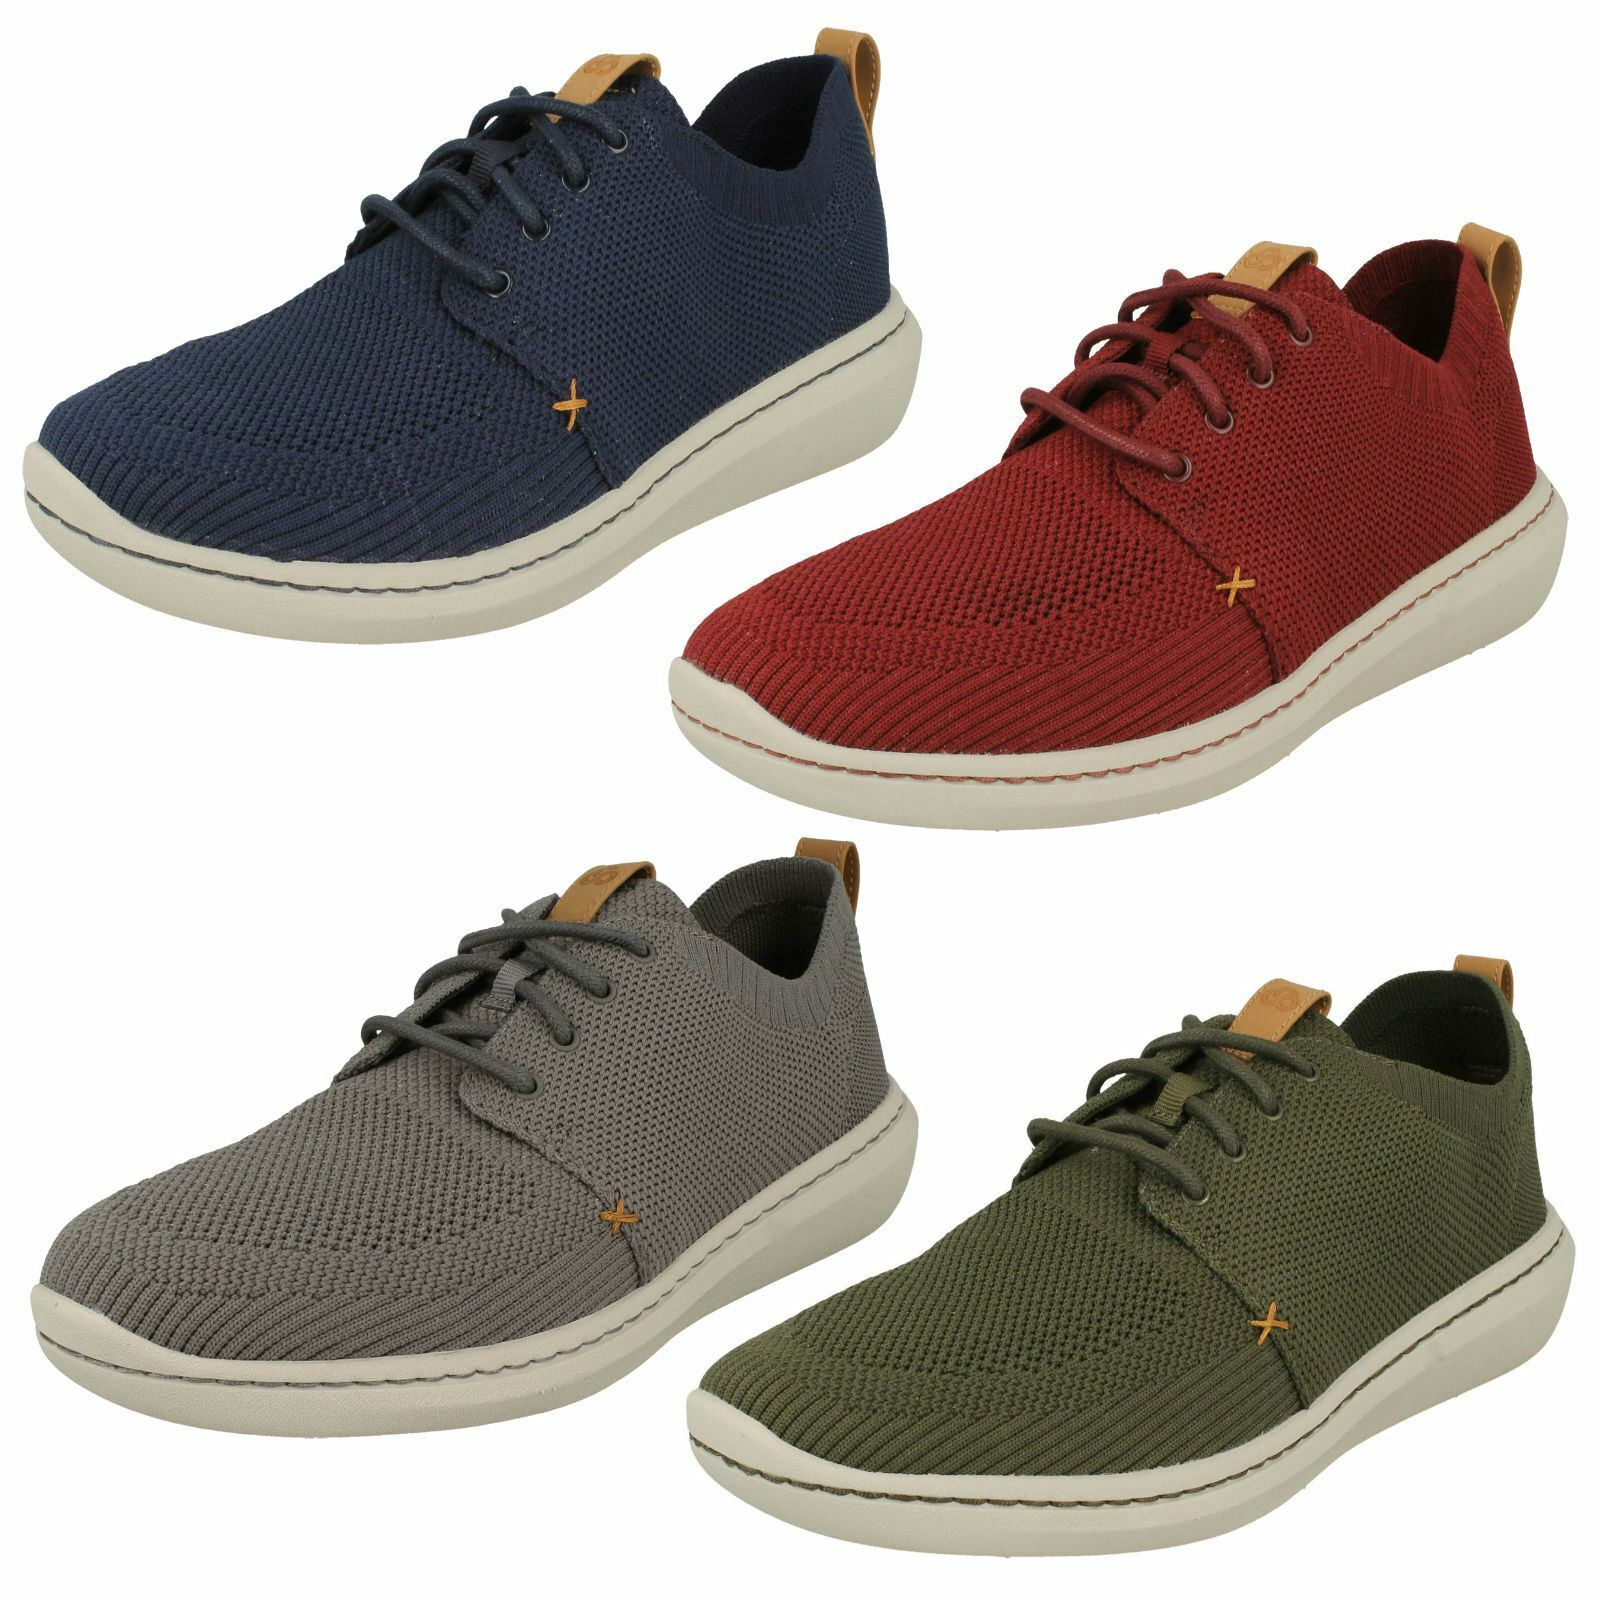 'Mens Clarks' - Casual Lace Up Shoes - Clarks' Step Urban Mix 6c25c5